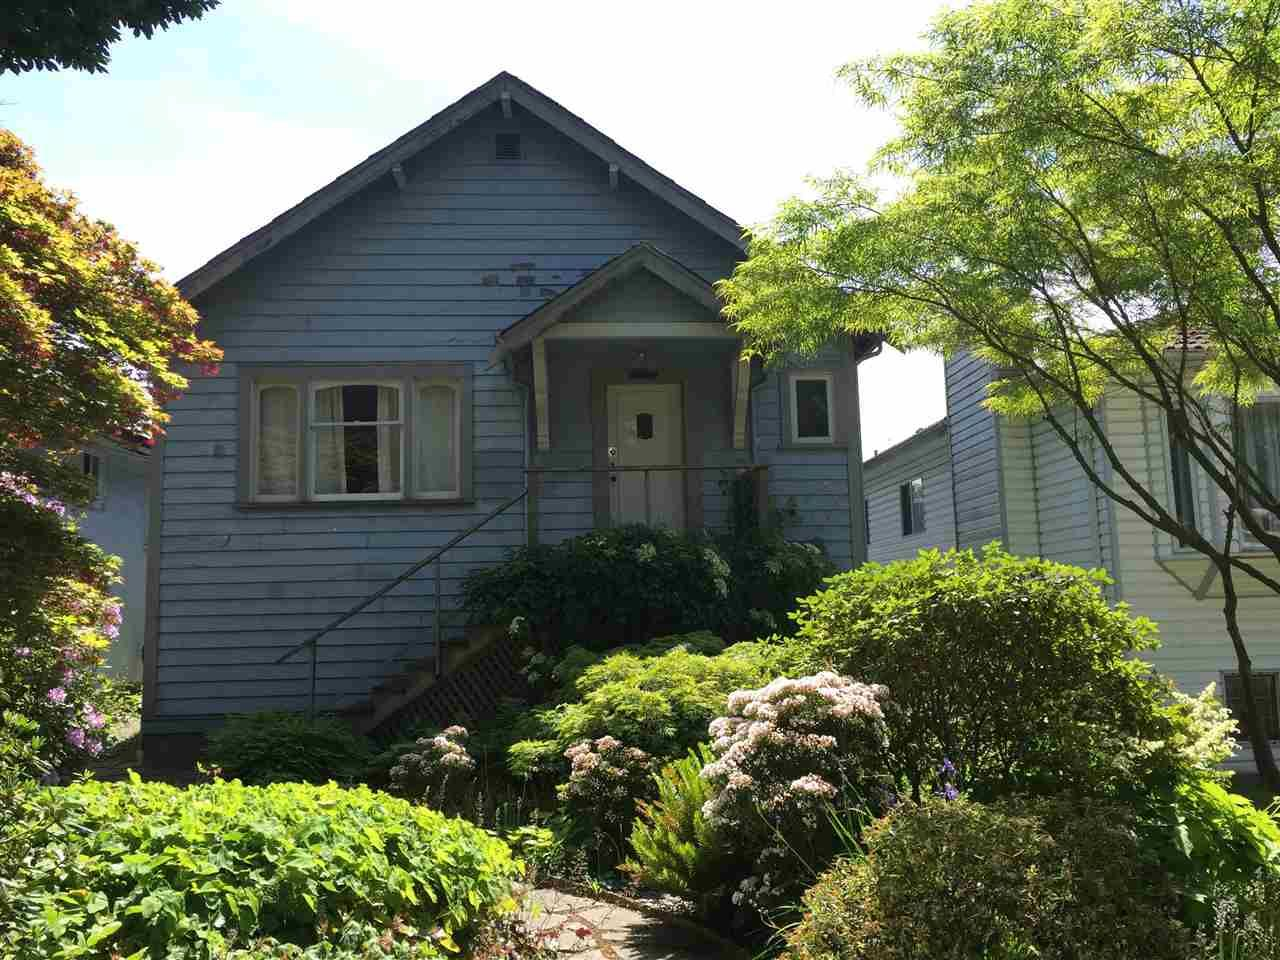 Main Photo: 3240 WILLIAM Street in Vancouver: Renfrew VE House for sale (Vancouver East)  : MLS®# R2070040